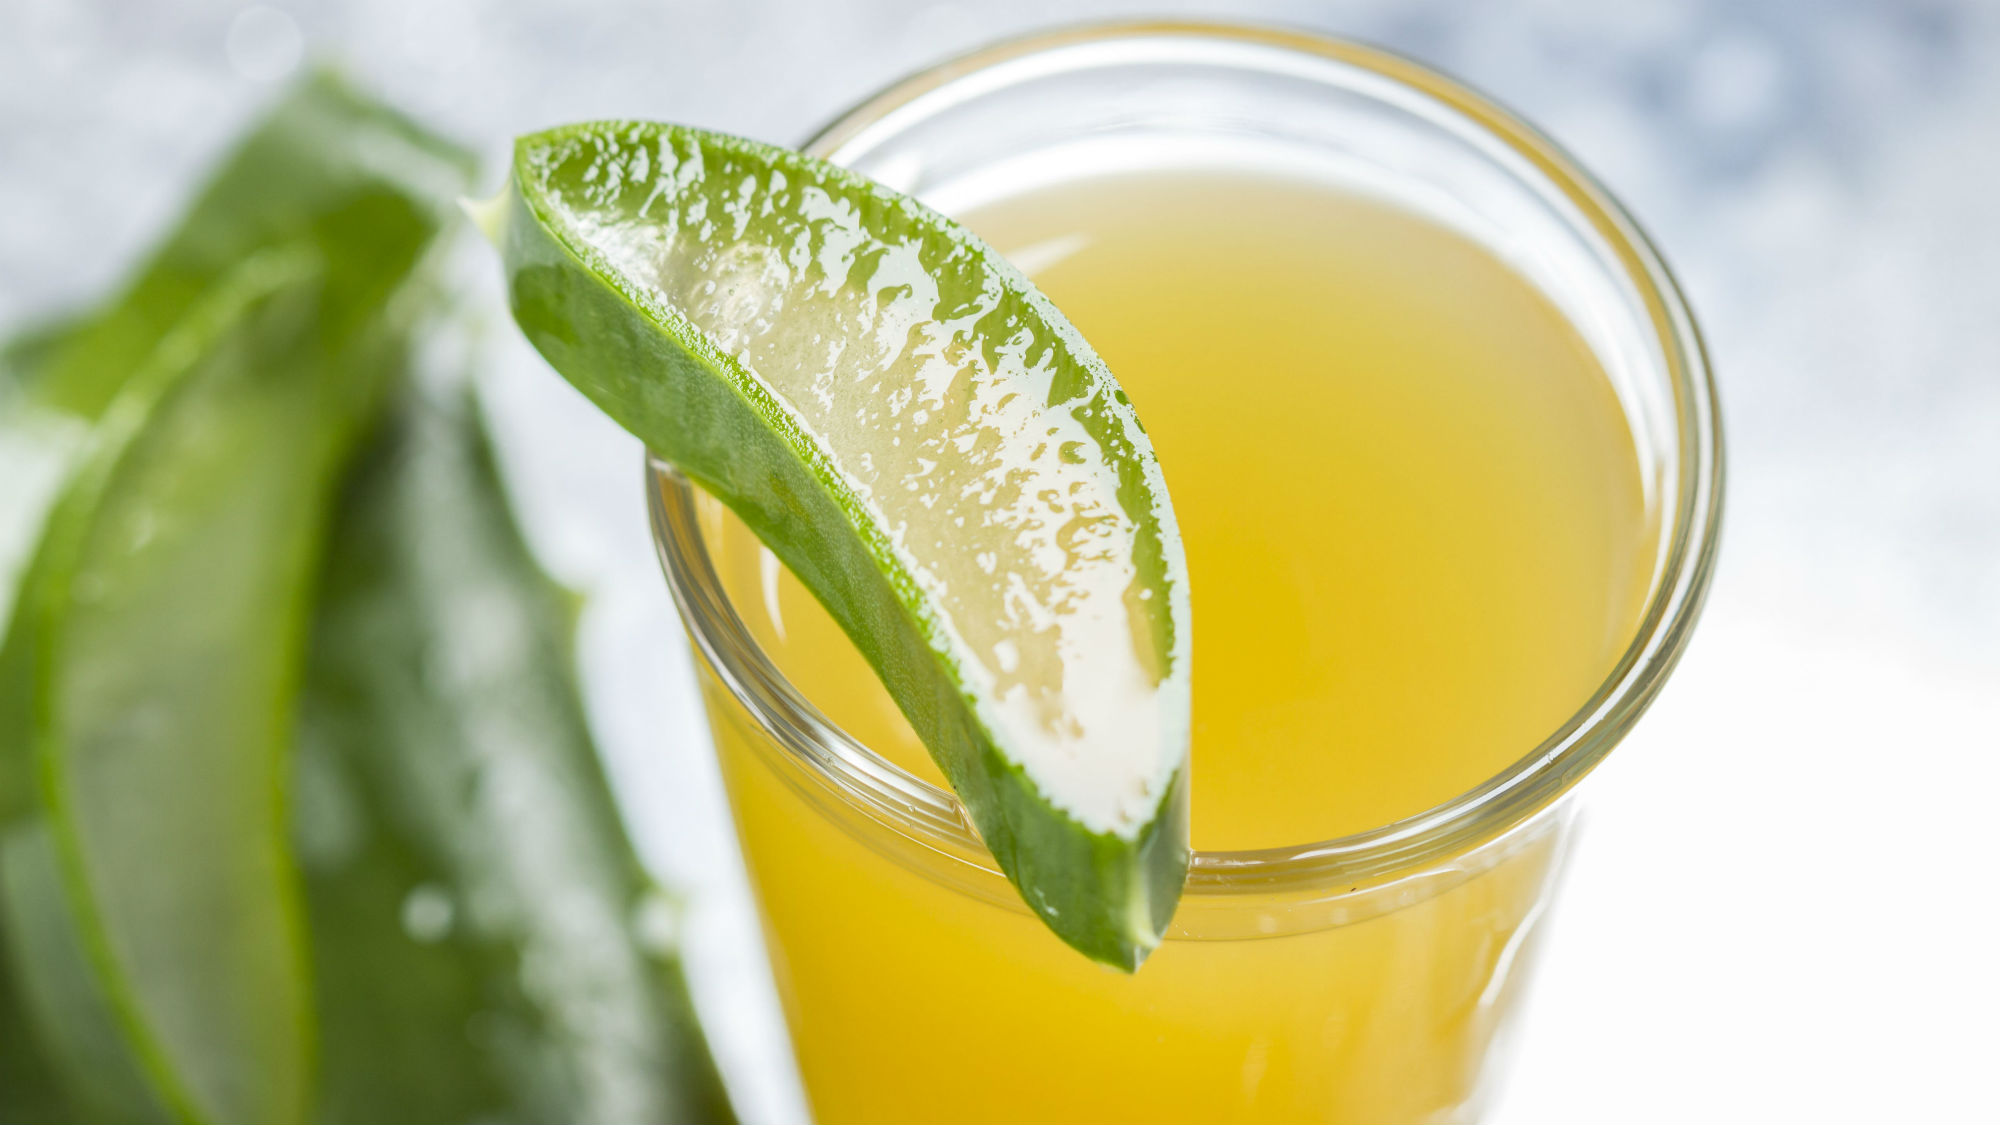 how to make aloe vera juice at home video